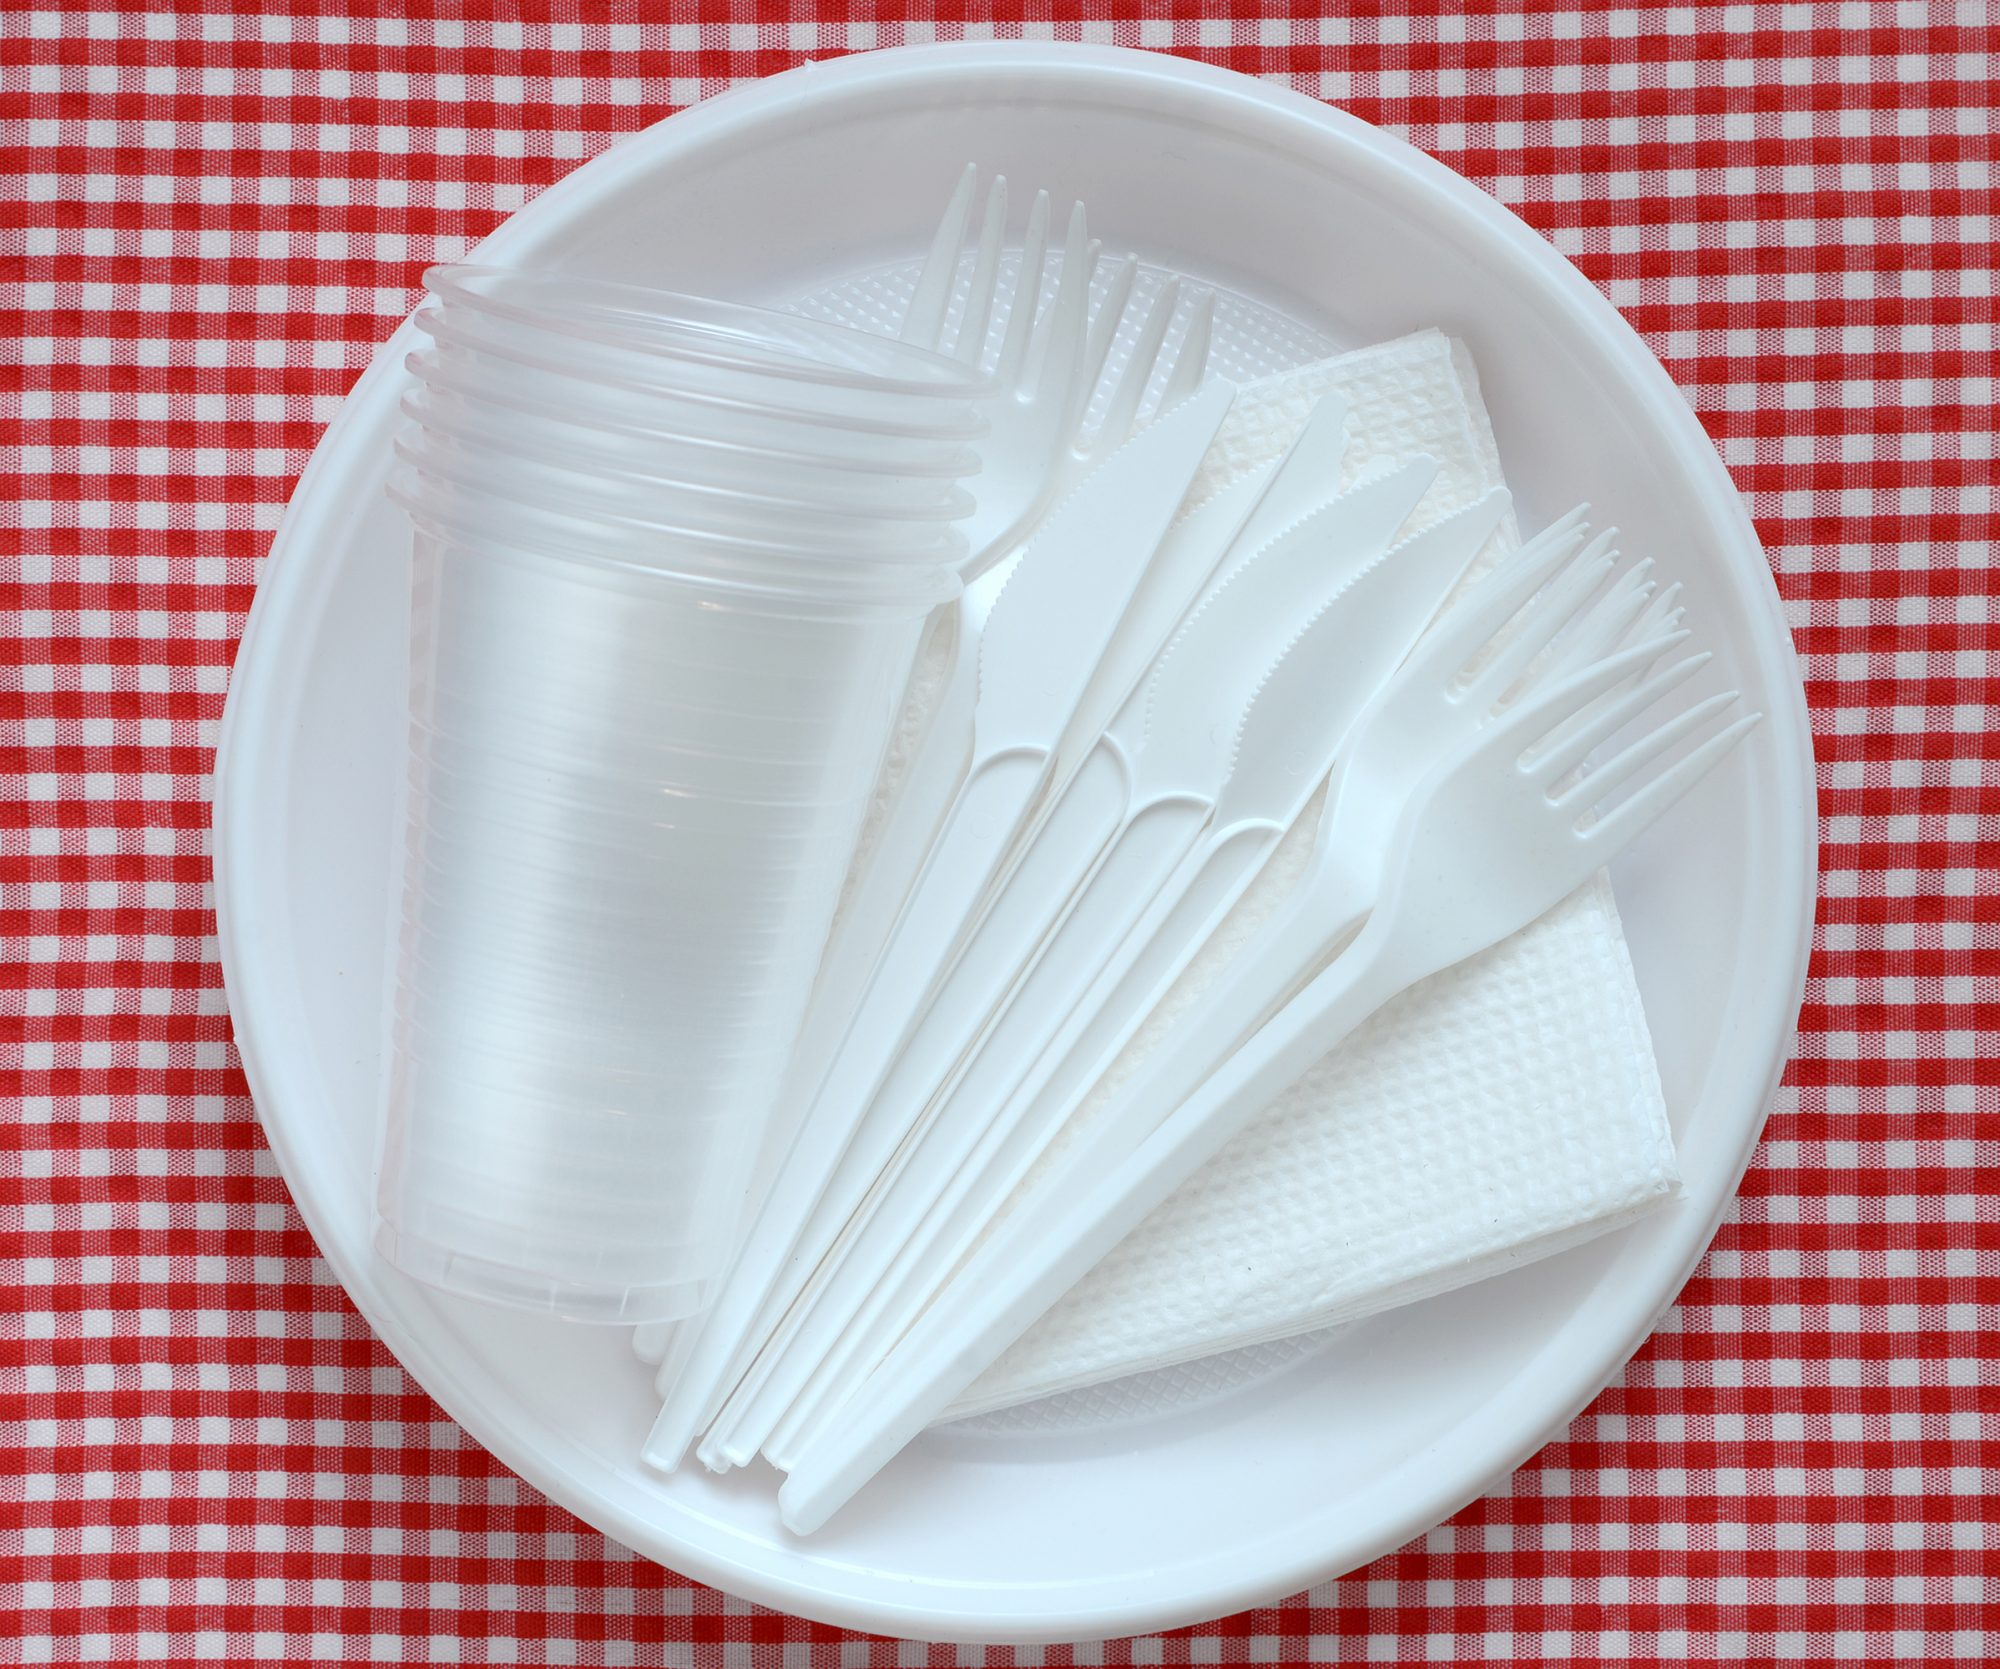 Plastic plates, cups, and utensils